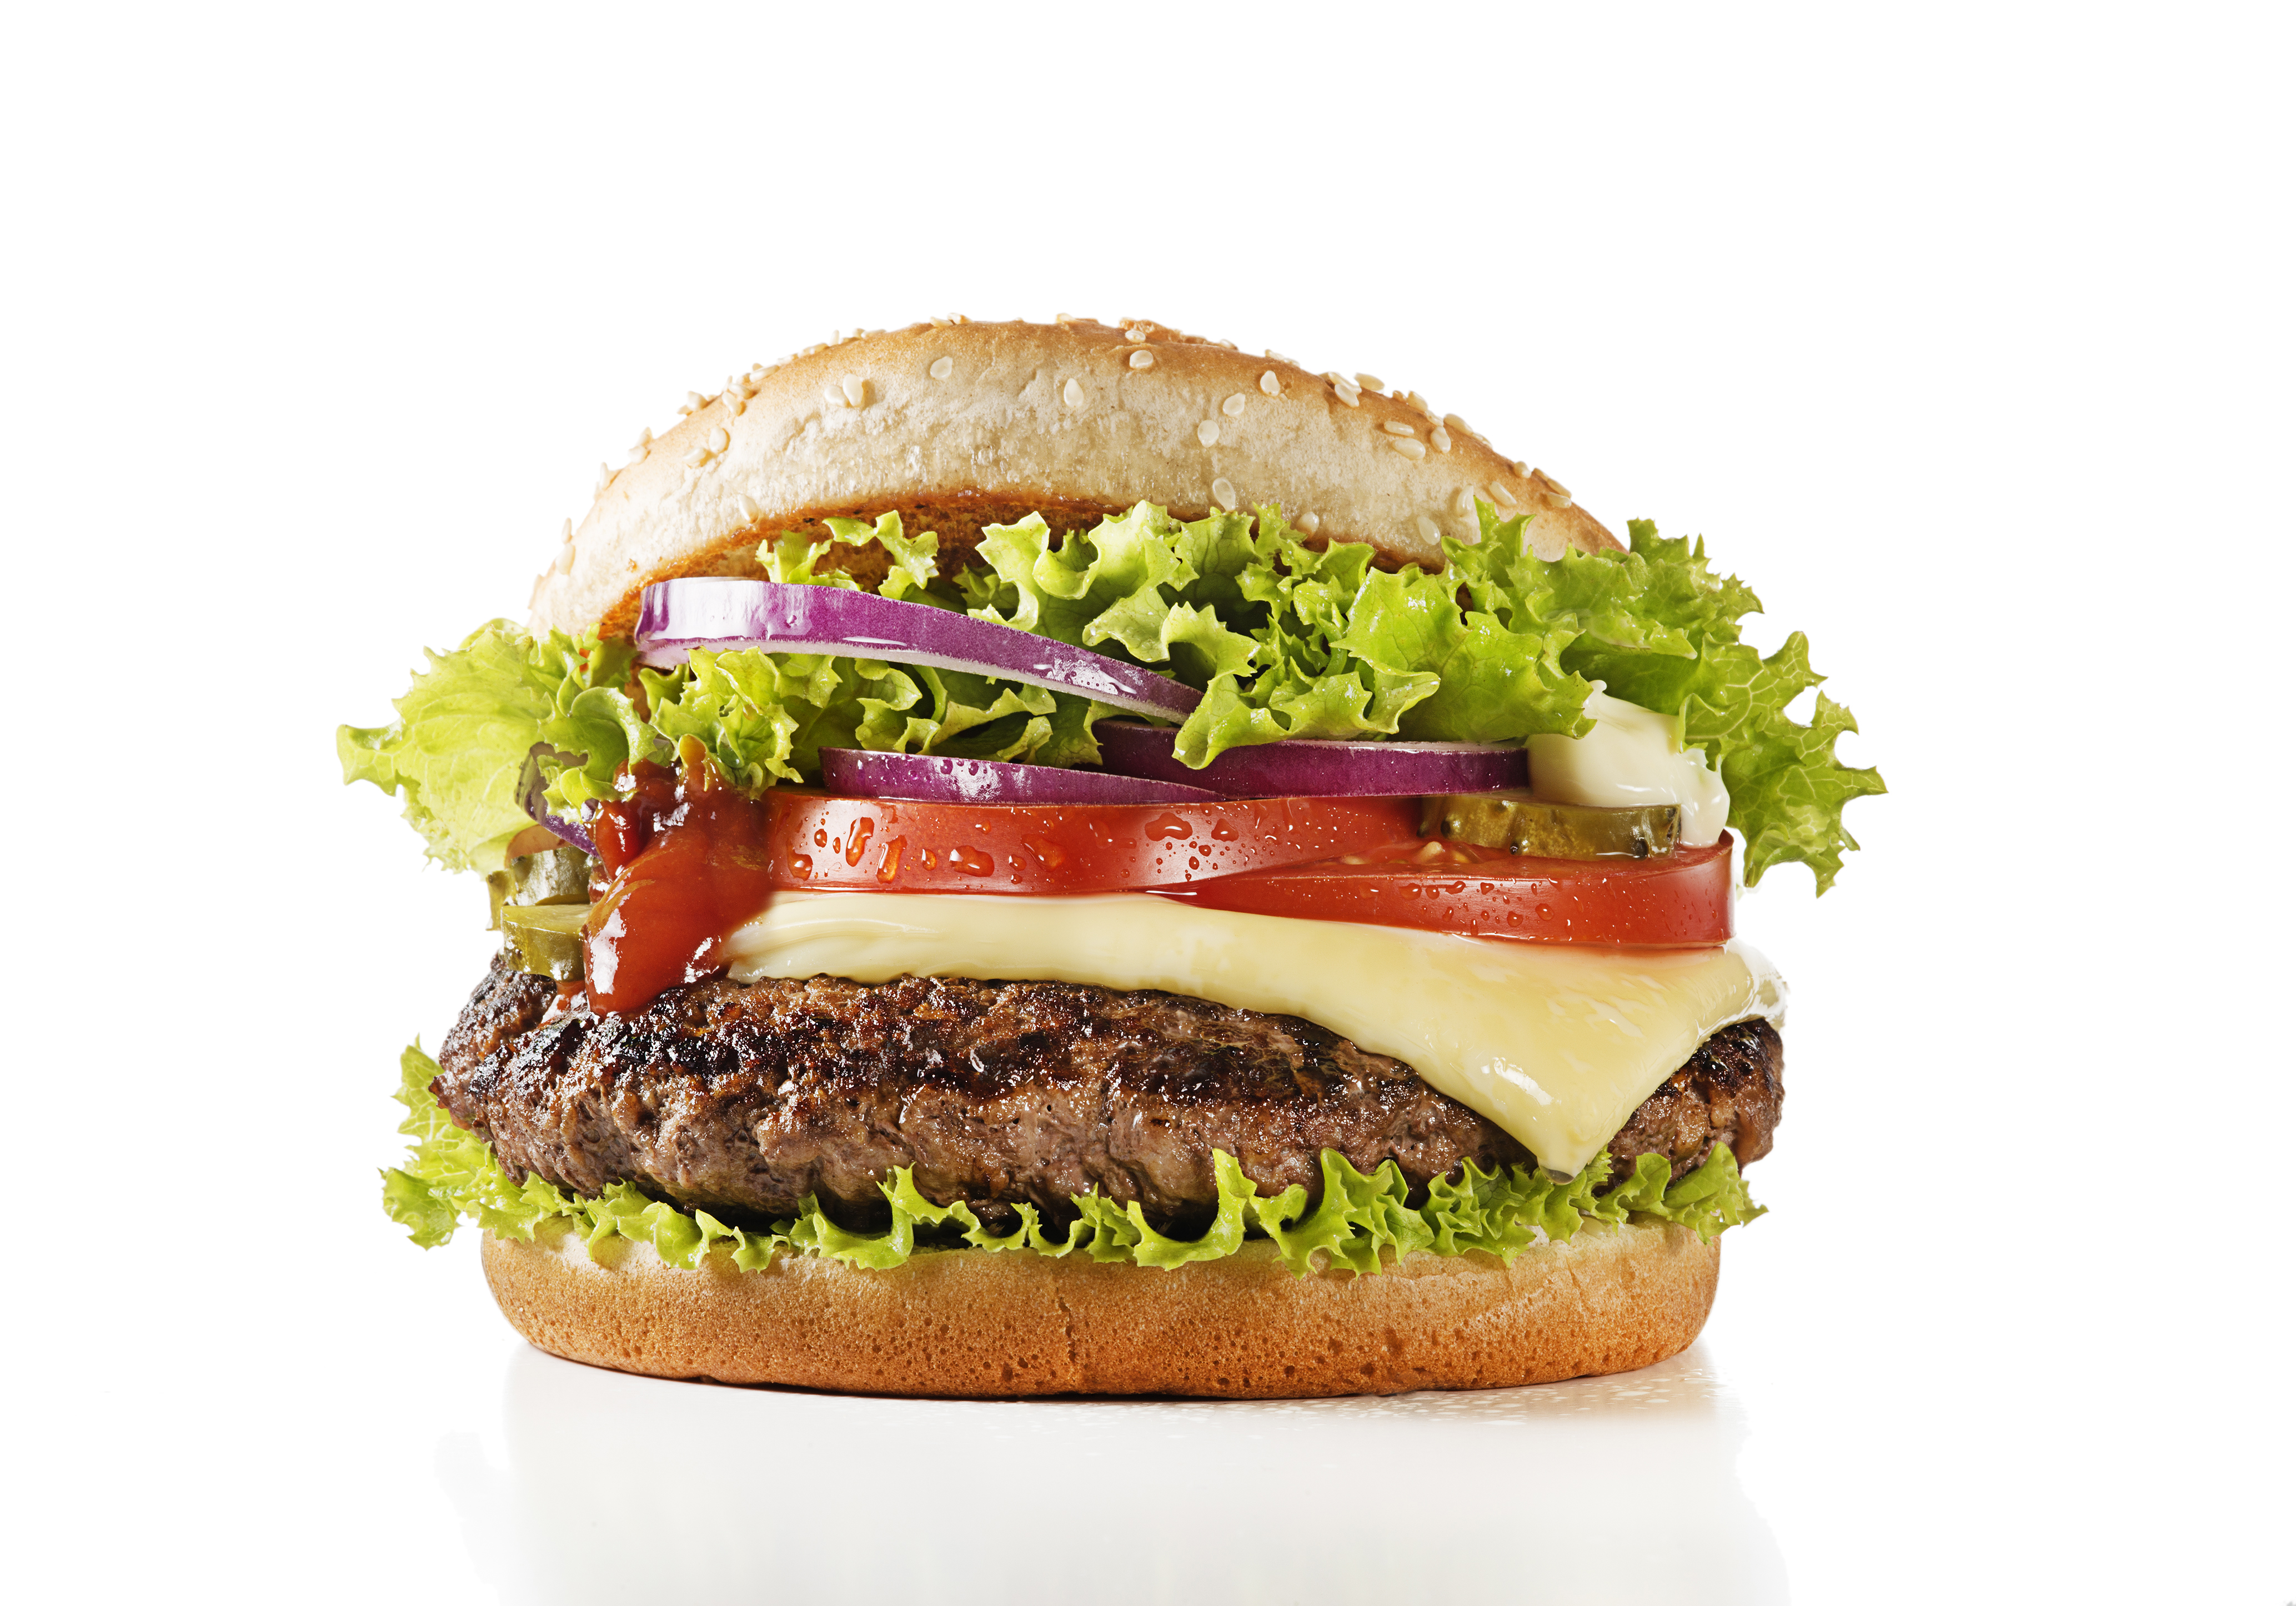 Impossible And Beyond How Healthy Are These Meatless Burgers Harvard Health Blog Harvard Health Publishing